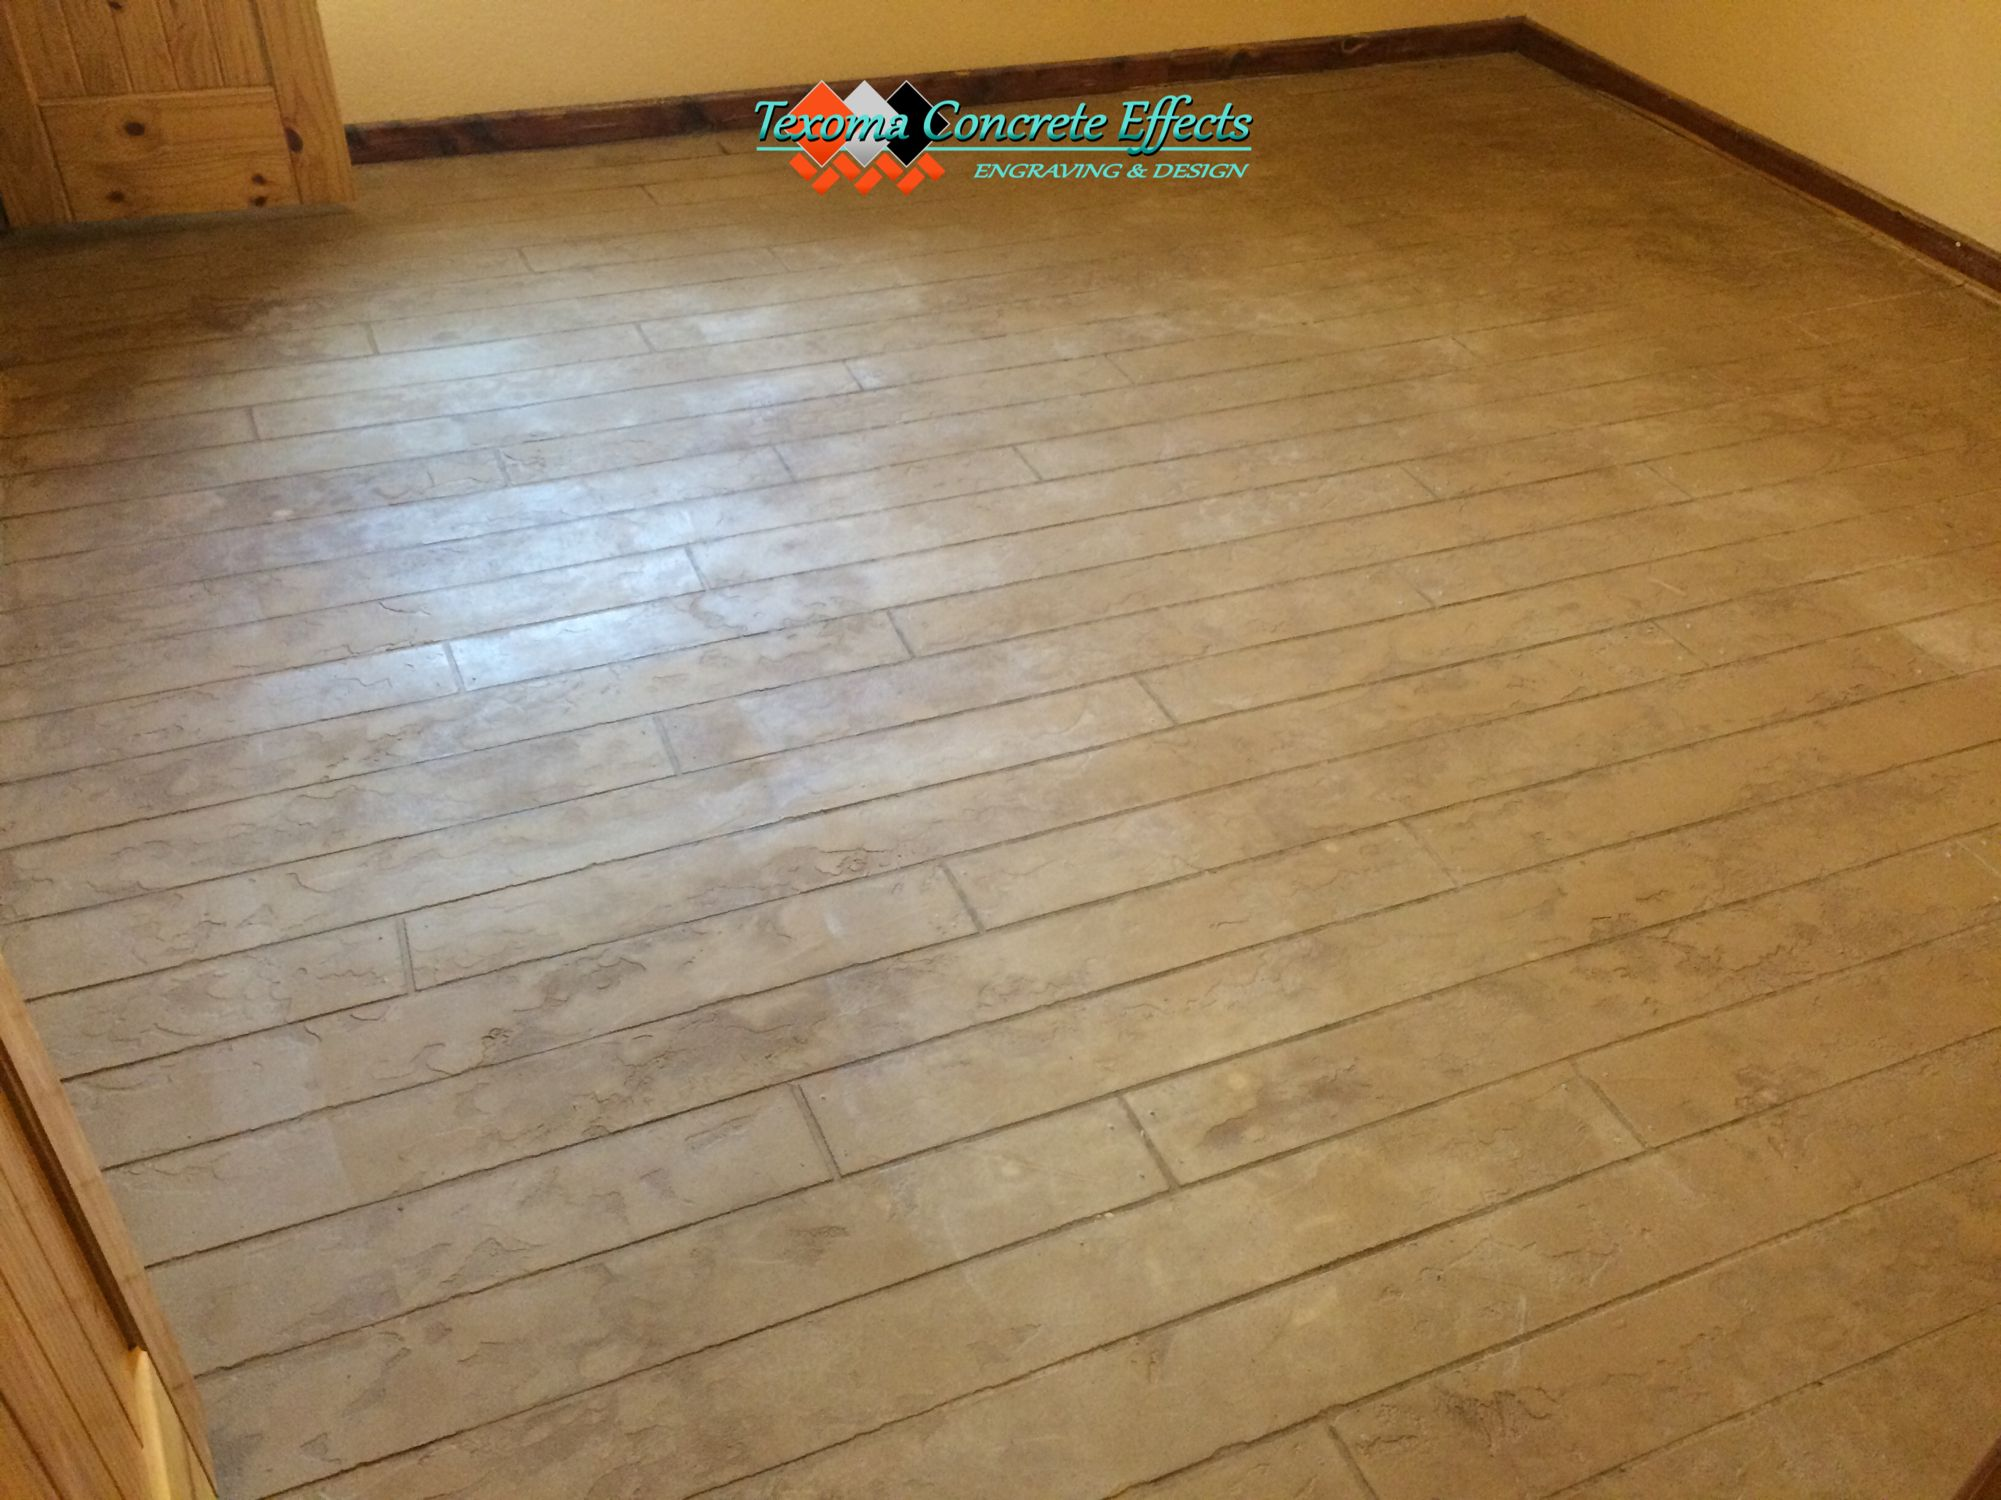 Stained Concrete Overlay Wood Plank Design In Bedroom By Texoma Concrete Effects Iowa Park Tx Stained Concrete Concrete Overlay Concrete